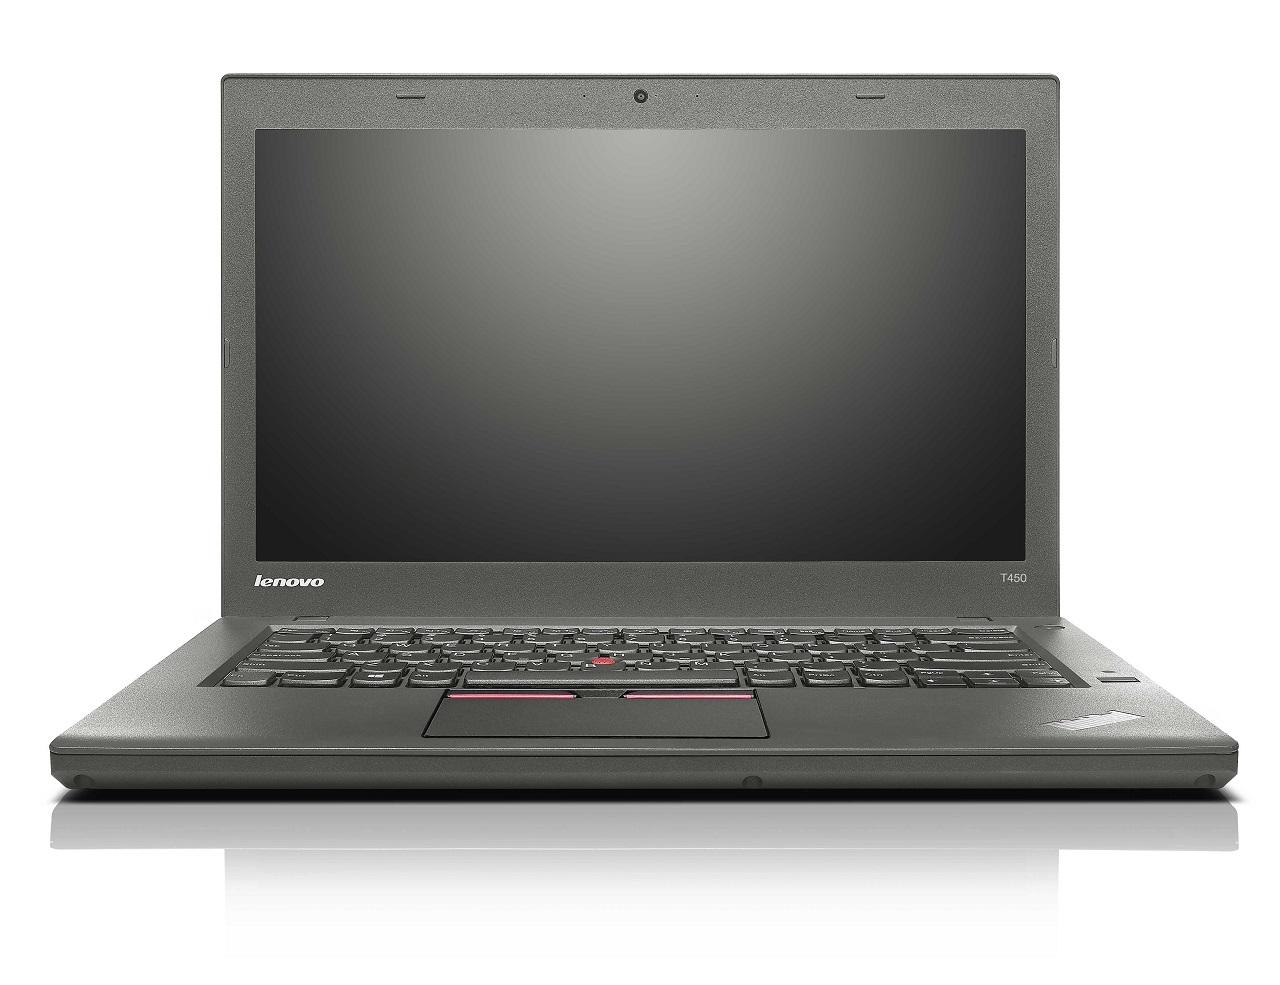 Lenovo ThinkPad T450, T450s and T550: thin notebooks for